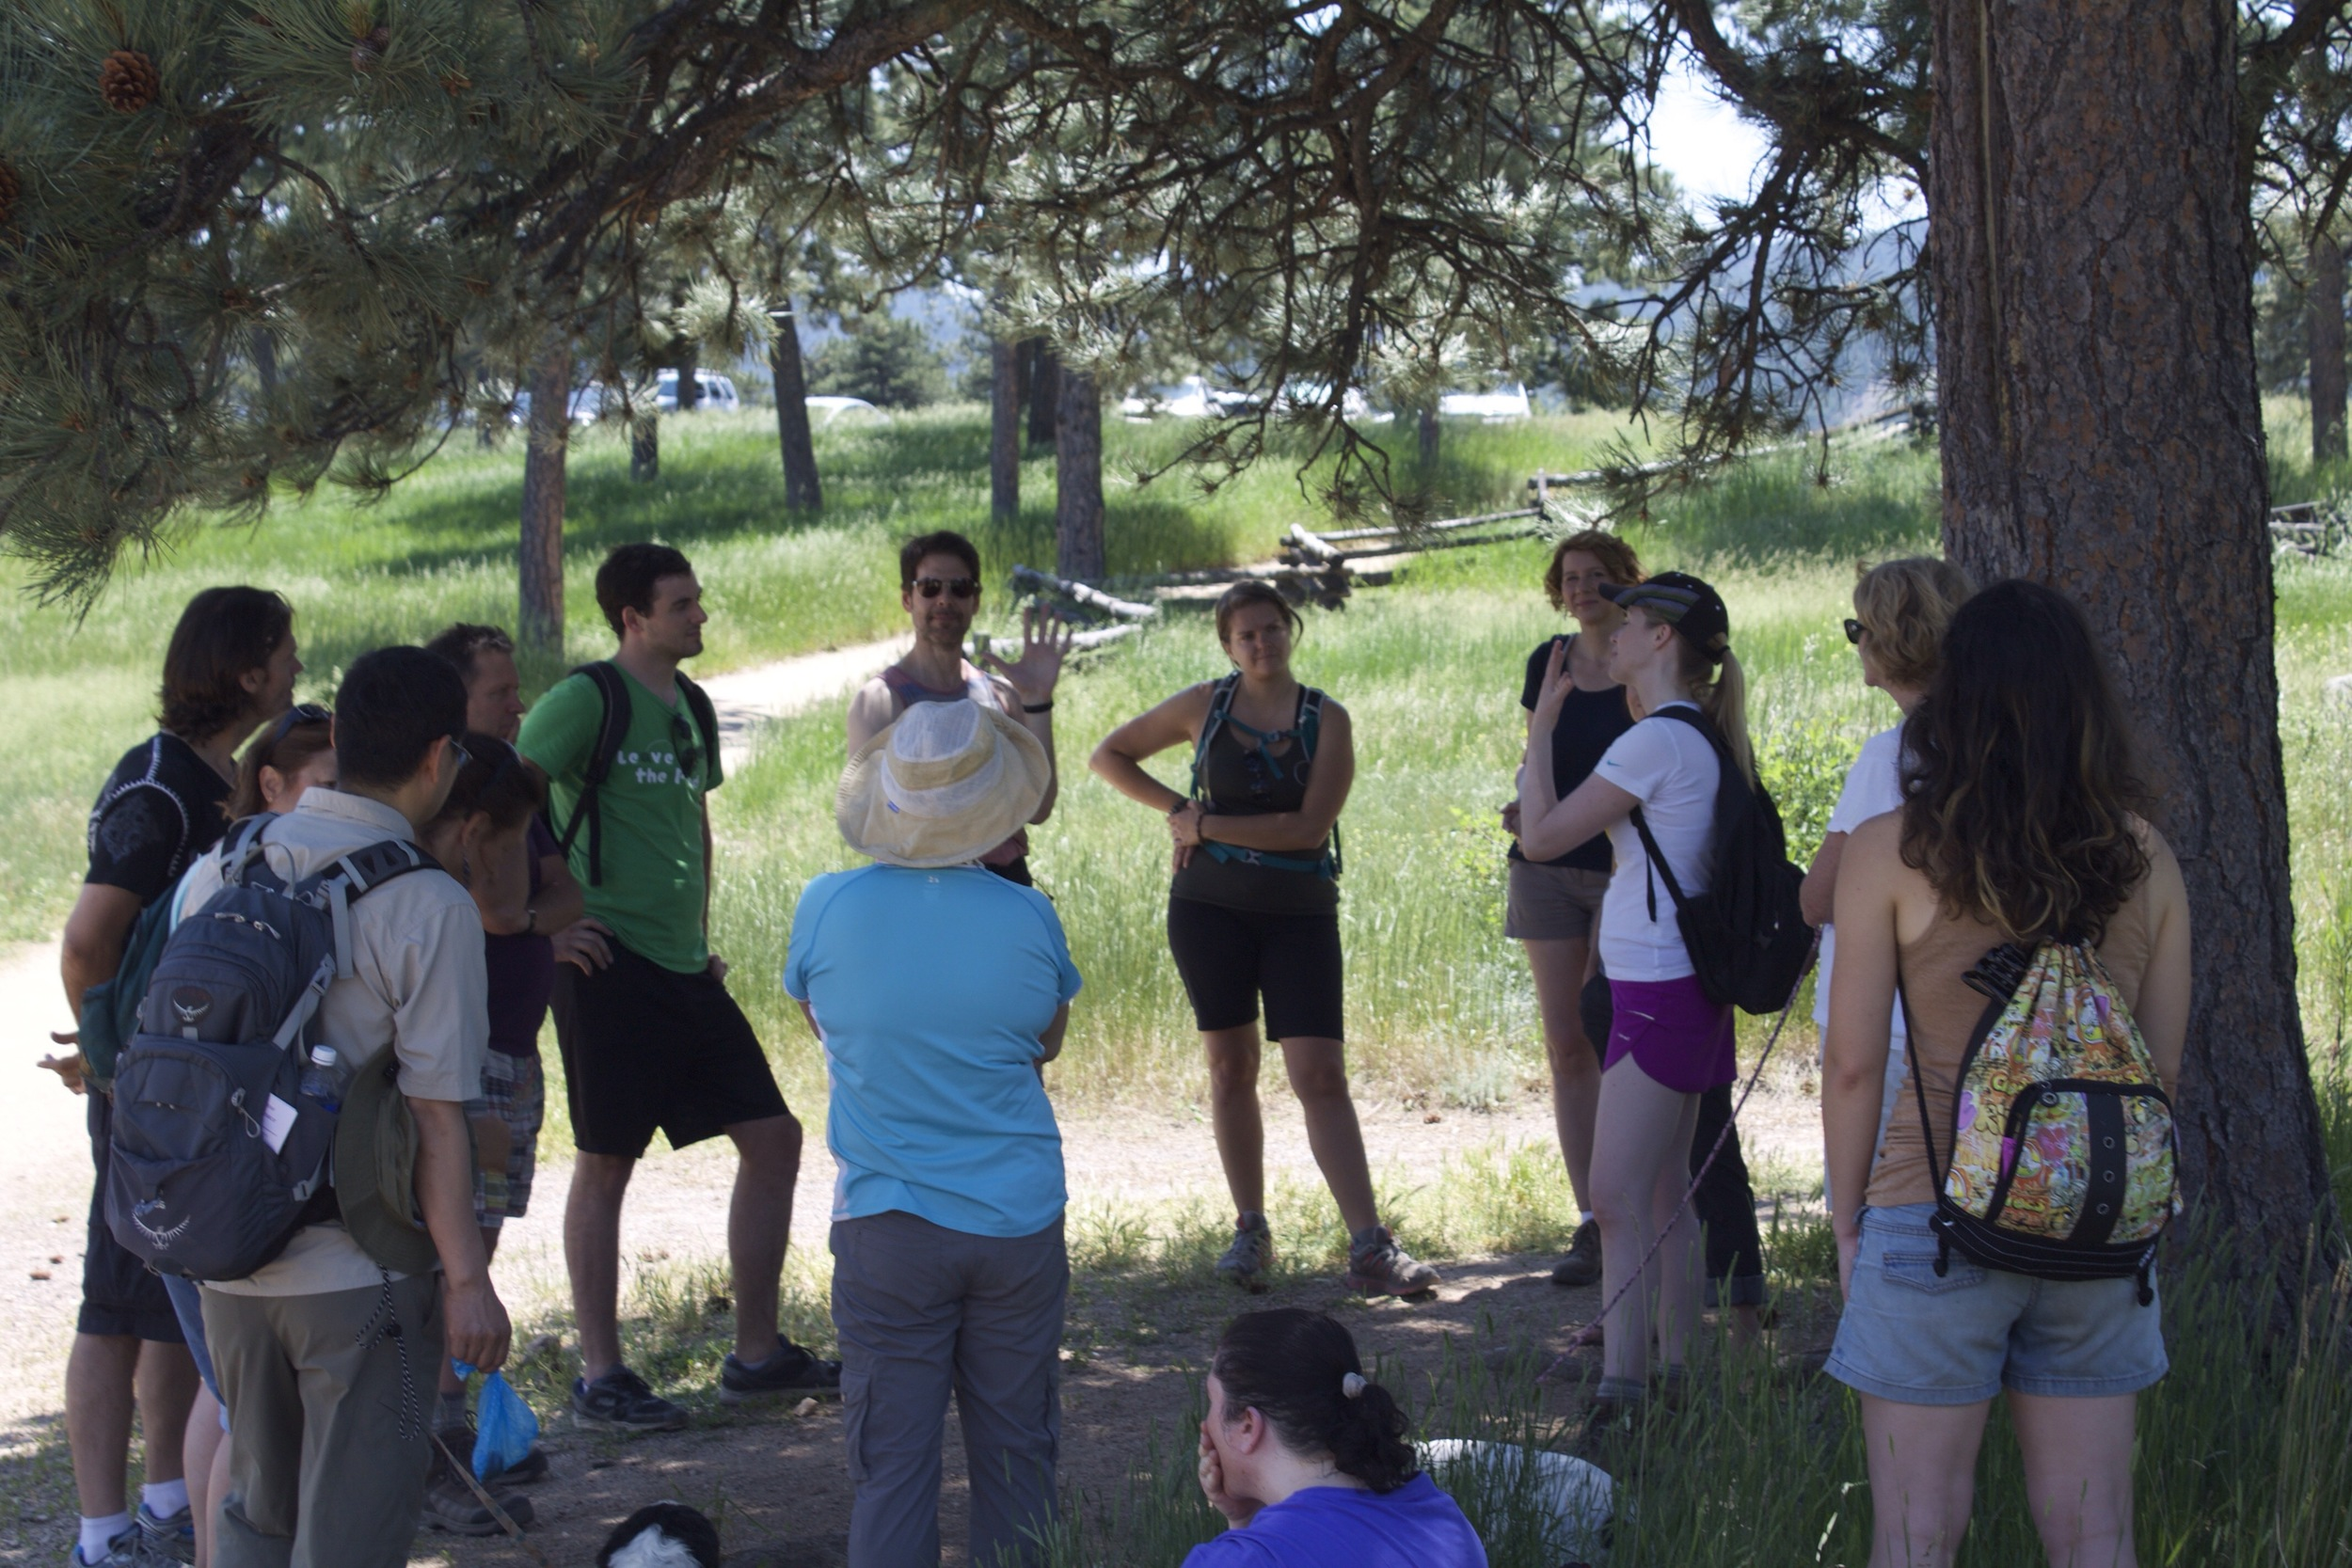 Leading a discussion about self-compassion on a free group hike.